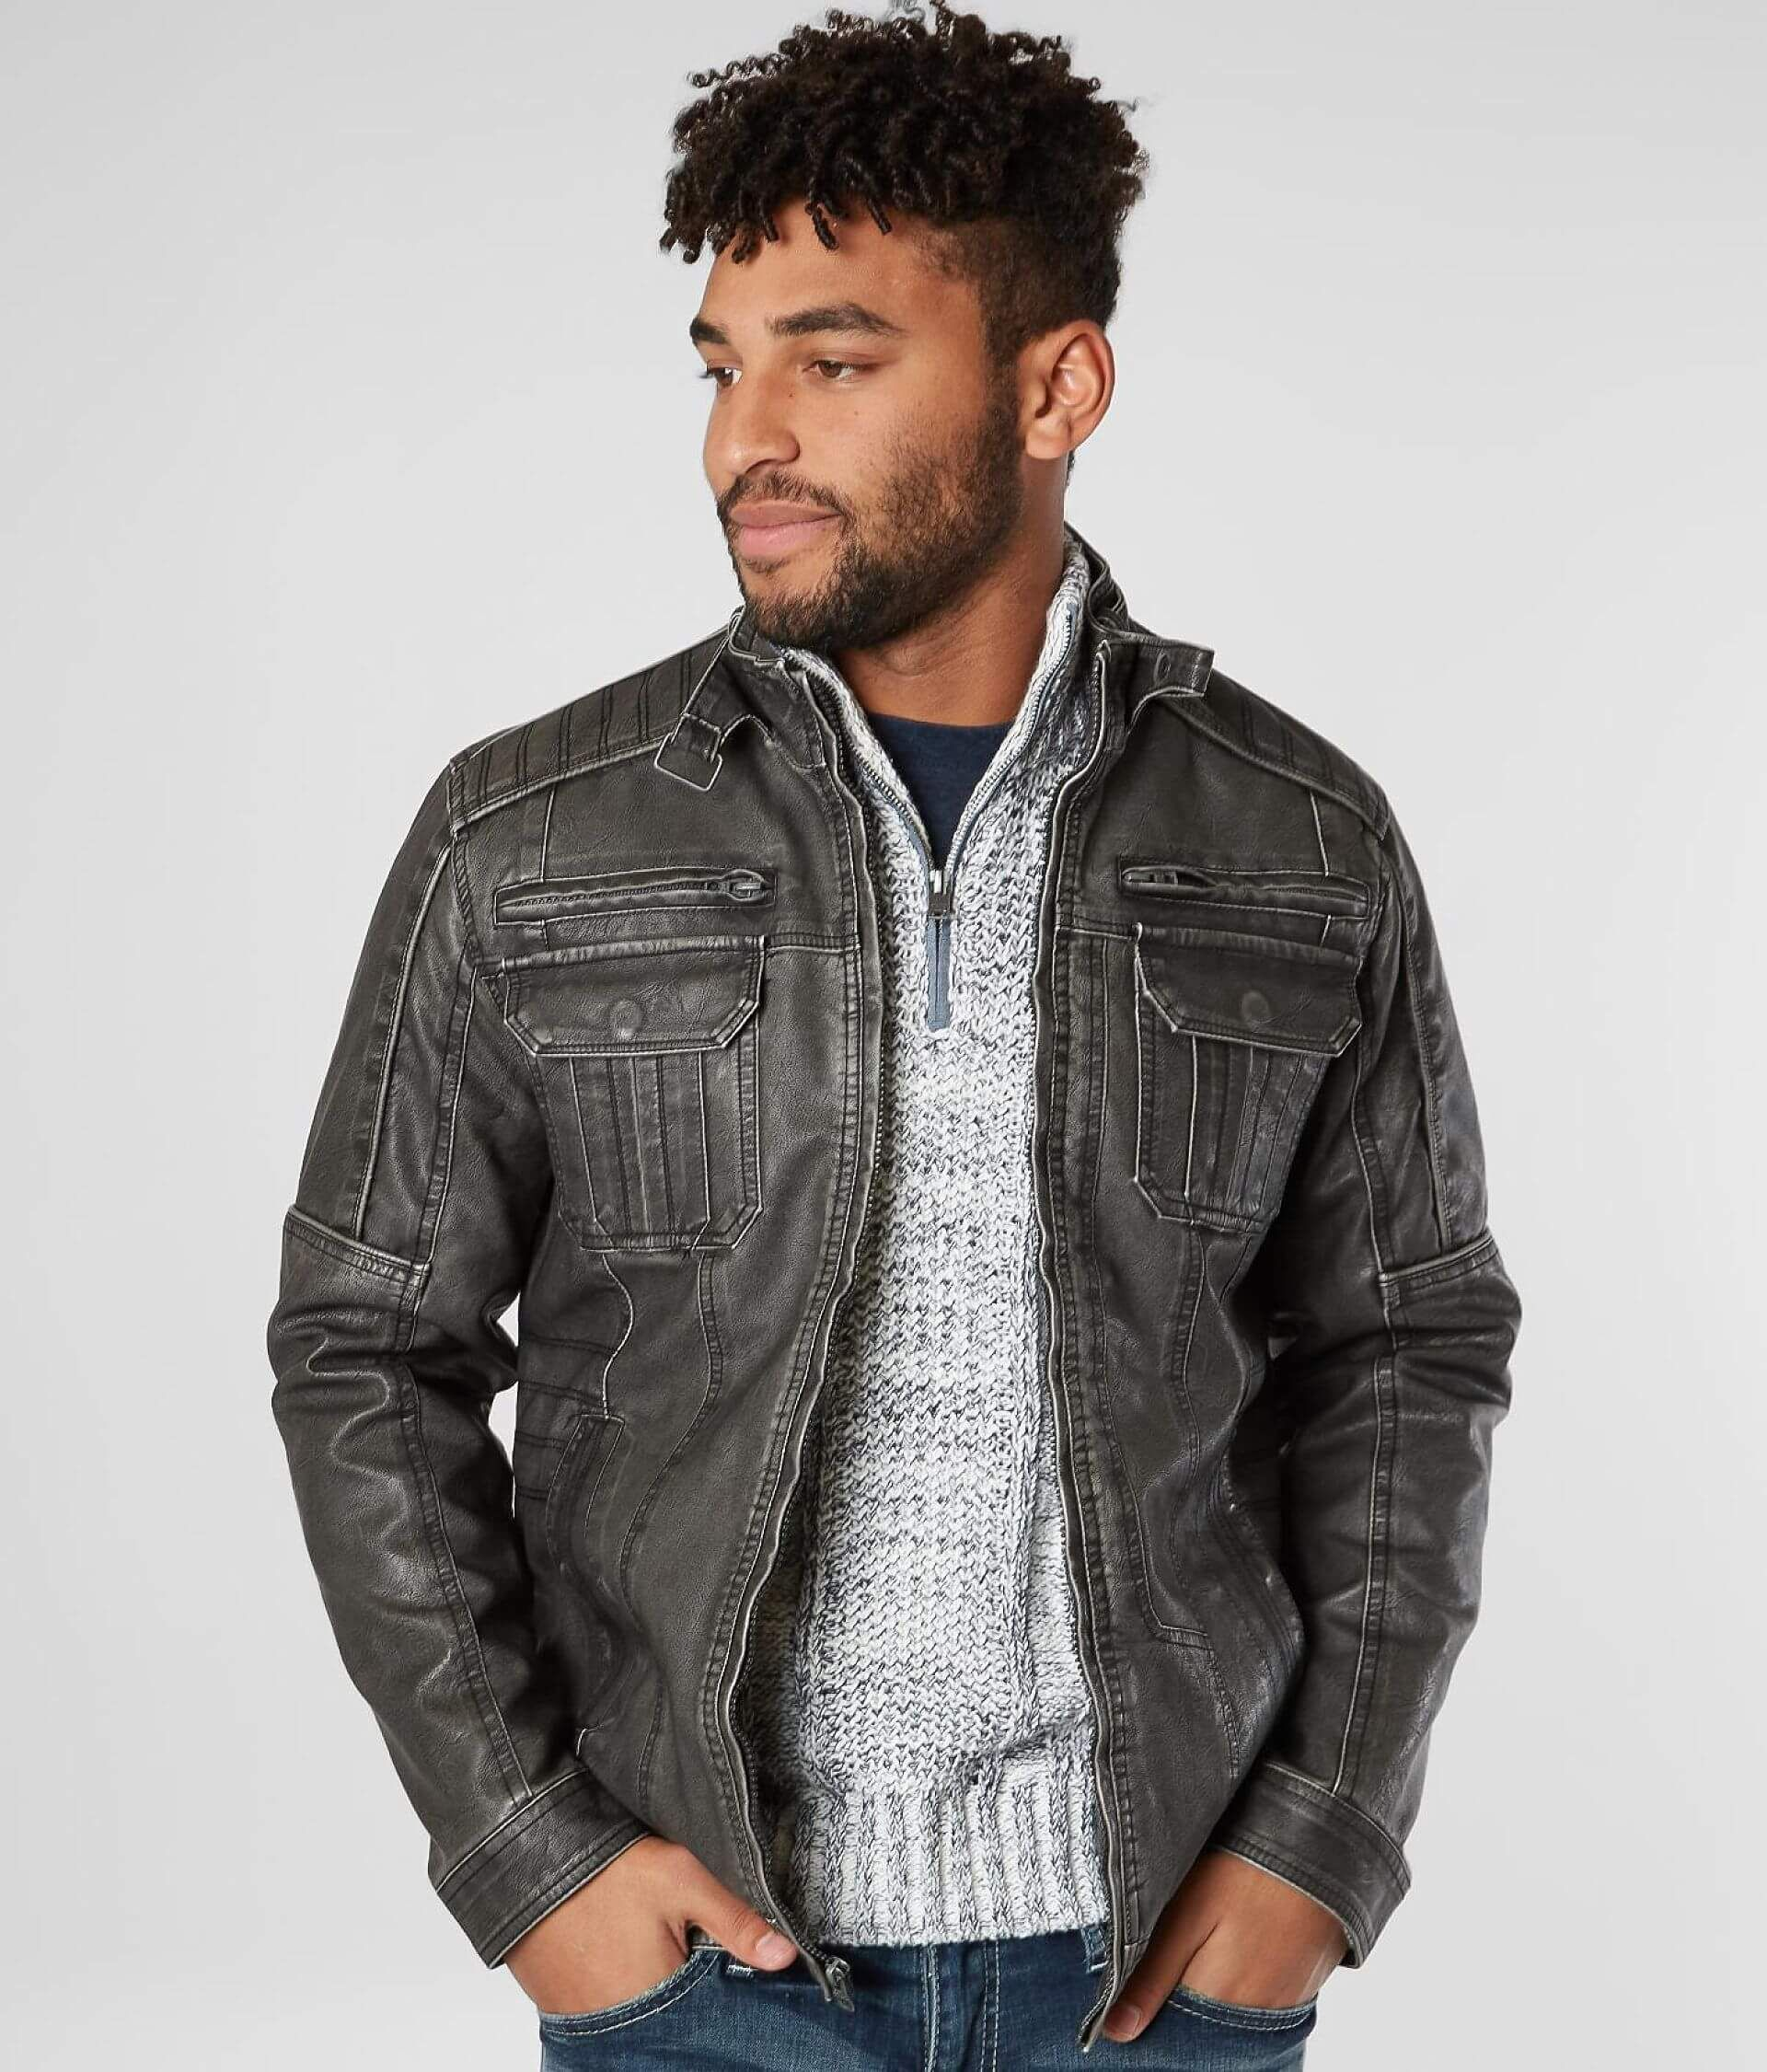 Buckle Black Washed Faux Leather Jacket Men's Coats